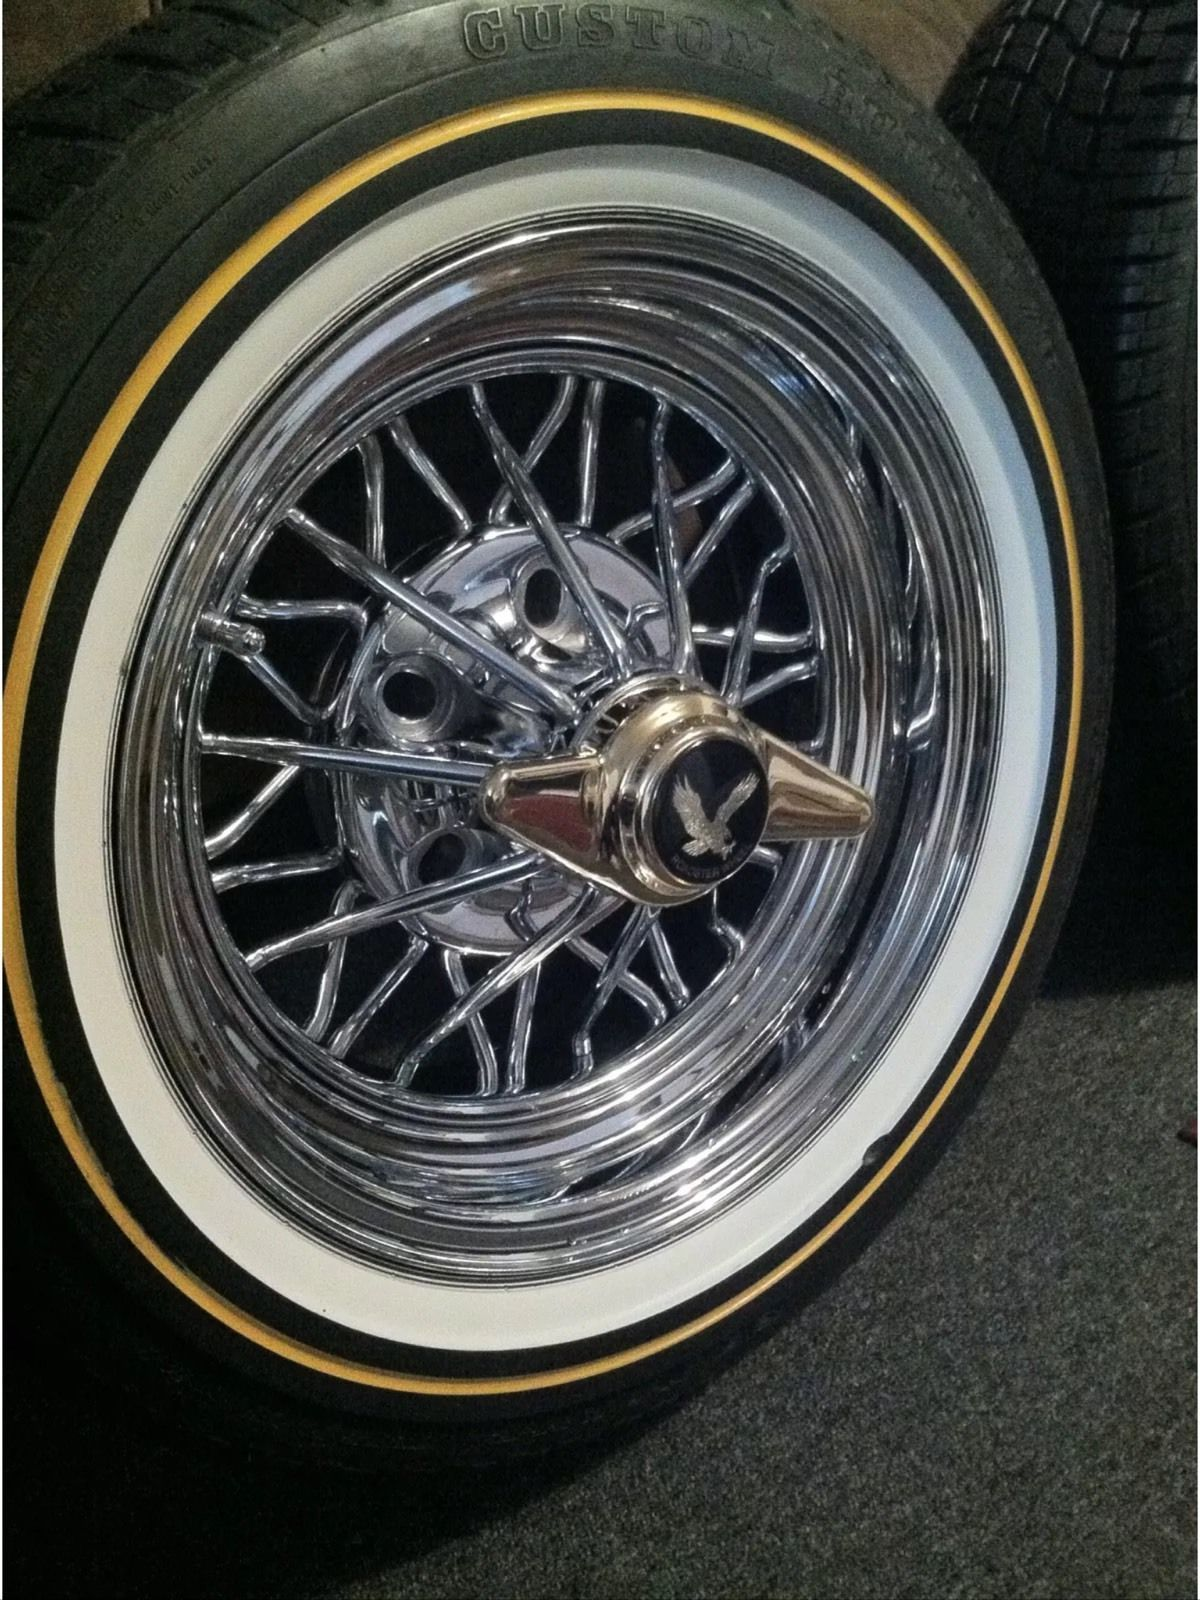 Lowrider rims 4 sale - Cragar Rims Pre Owned 30 Spoke Gold Chrome Star Wire Wheels Swangers Swangaz Car Caddy Life Pinterest Wheels Cars And Chevy